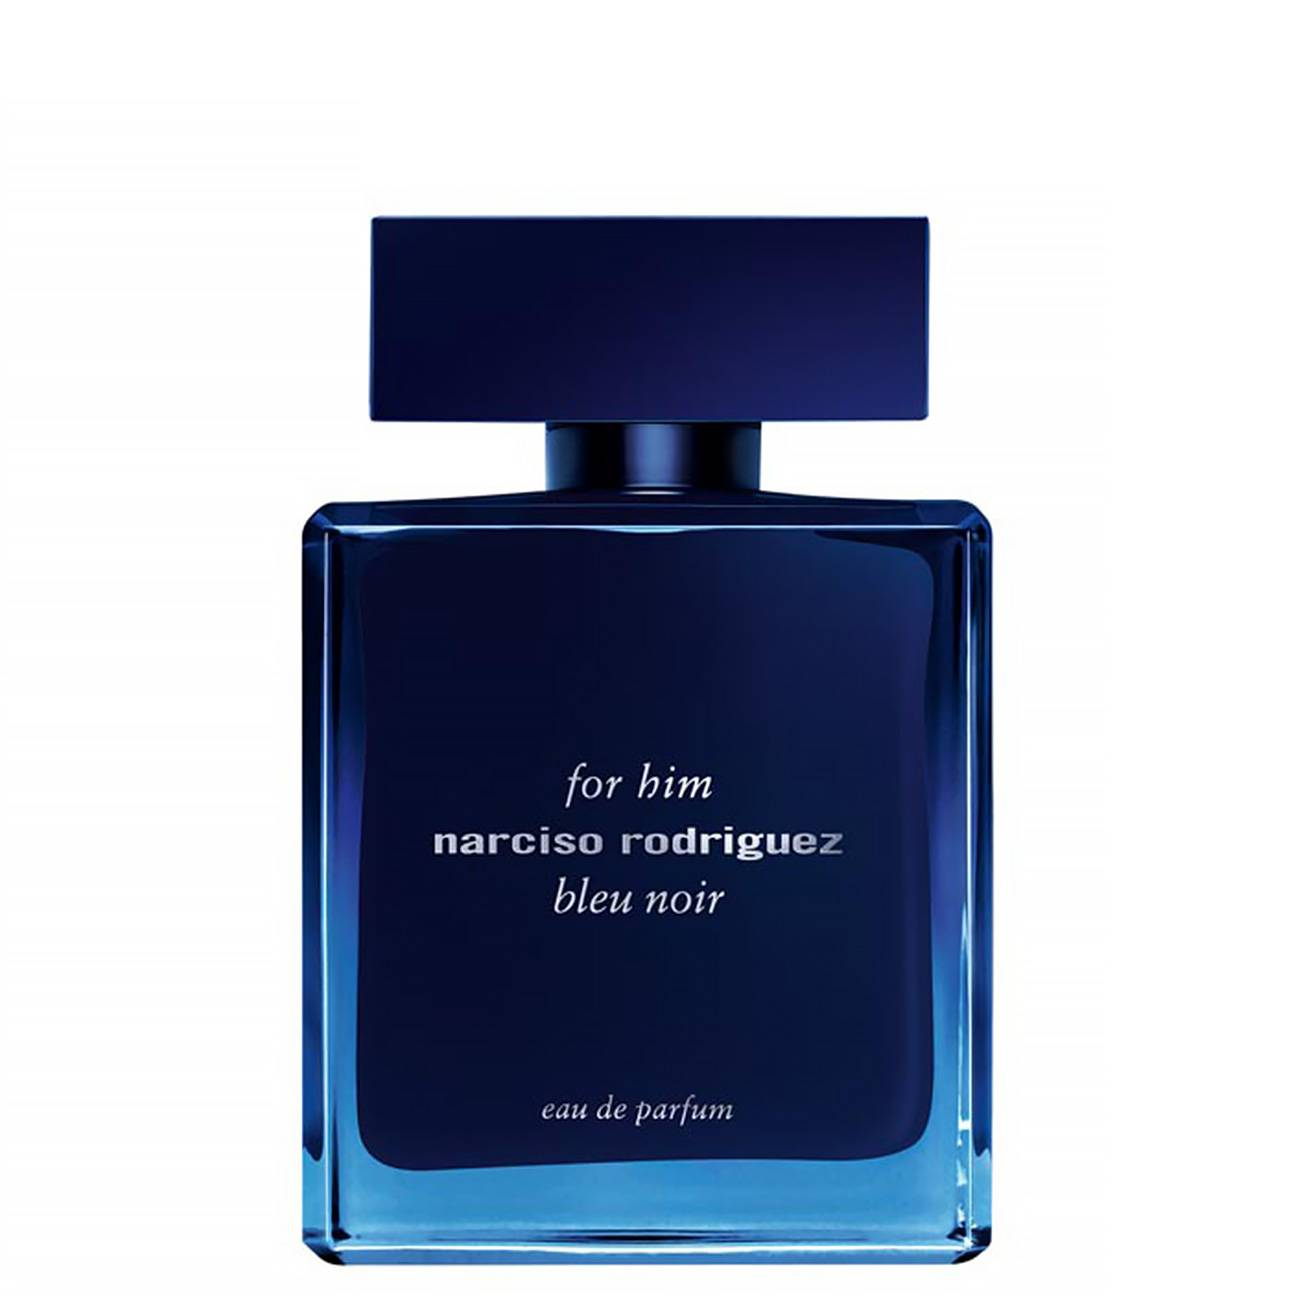 Narciso Rodriguez For Him Bleu Noir 100ml imagine